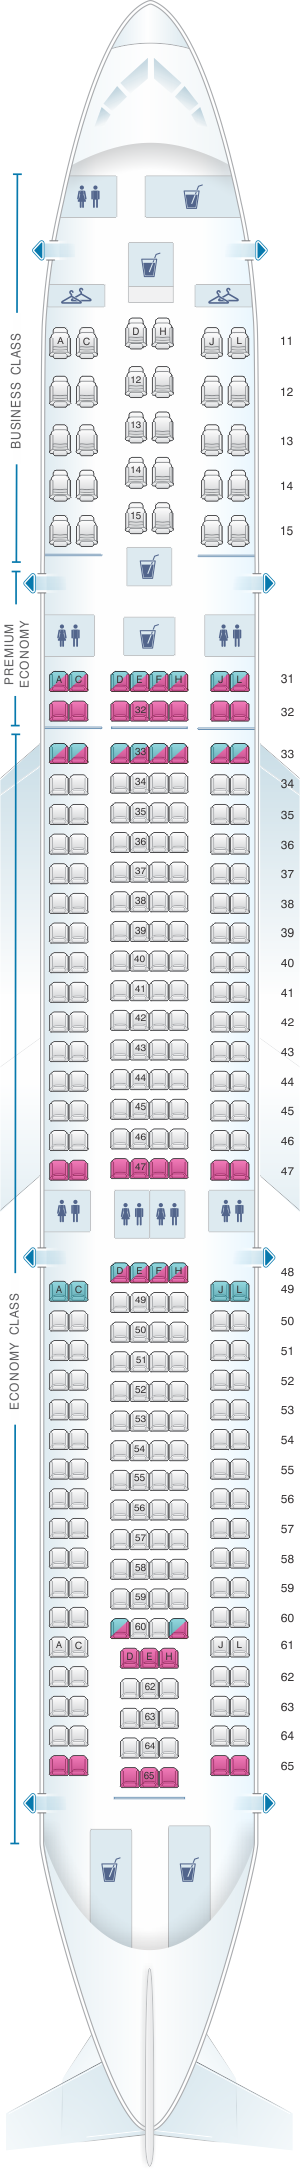 Seat map for Air China Airbus A330 300 (301PAX)